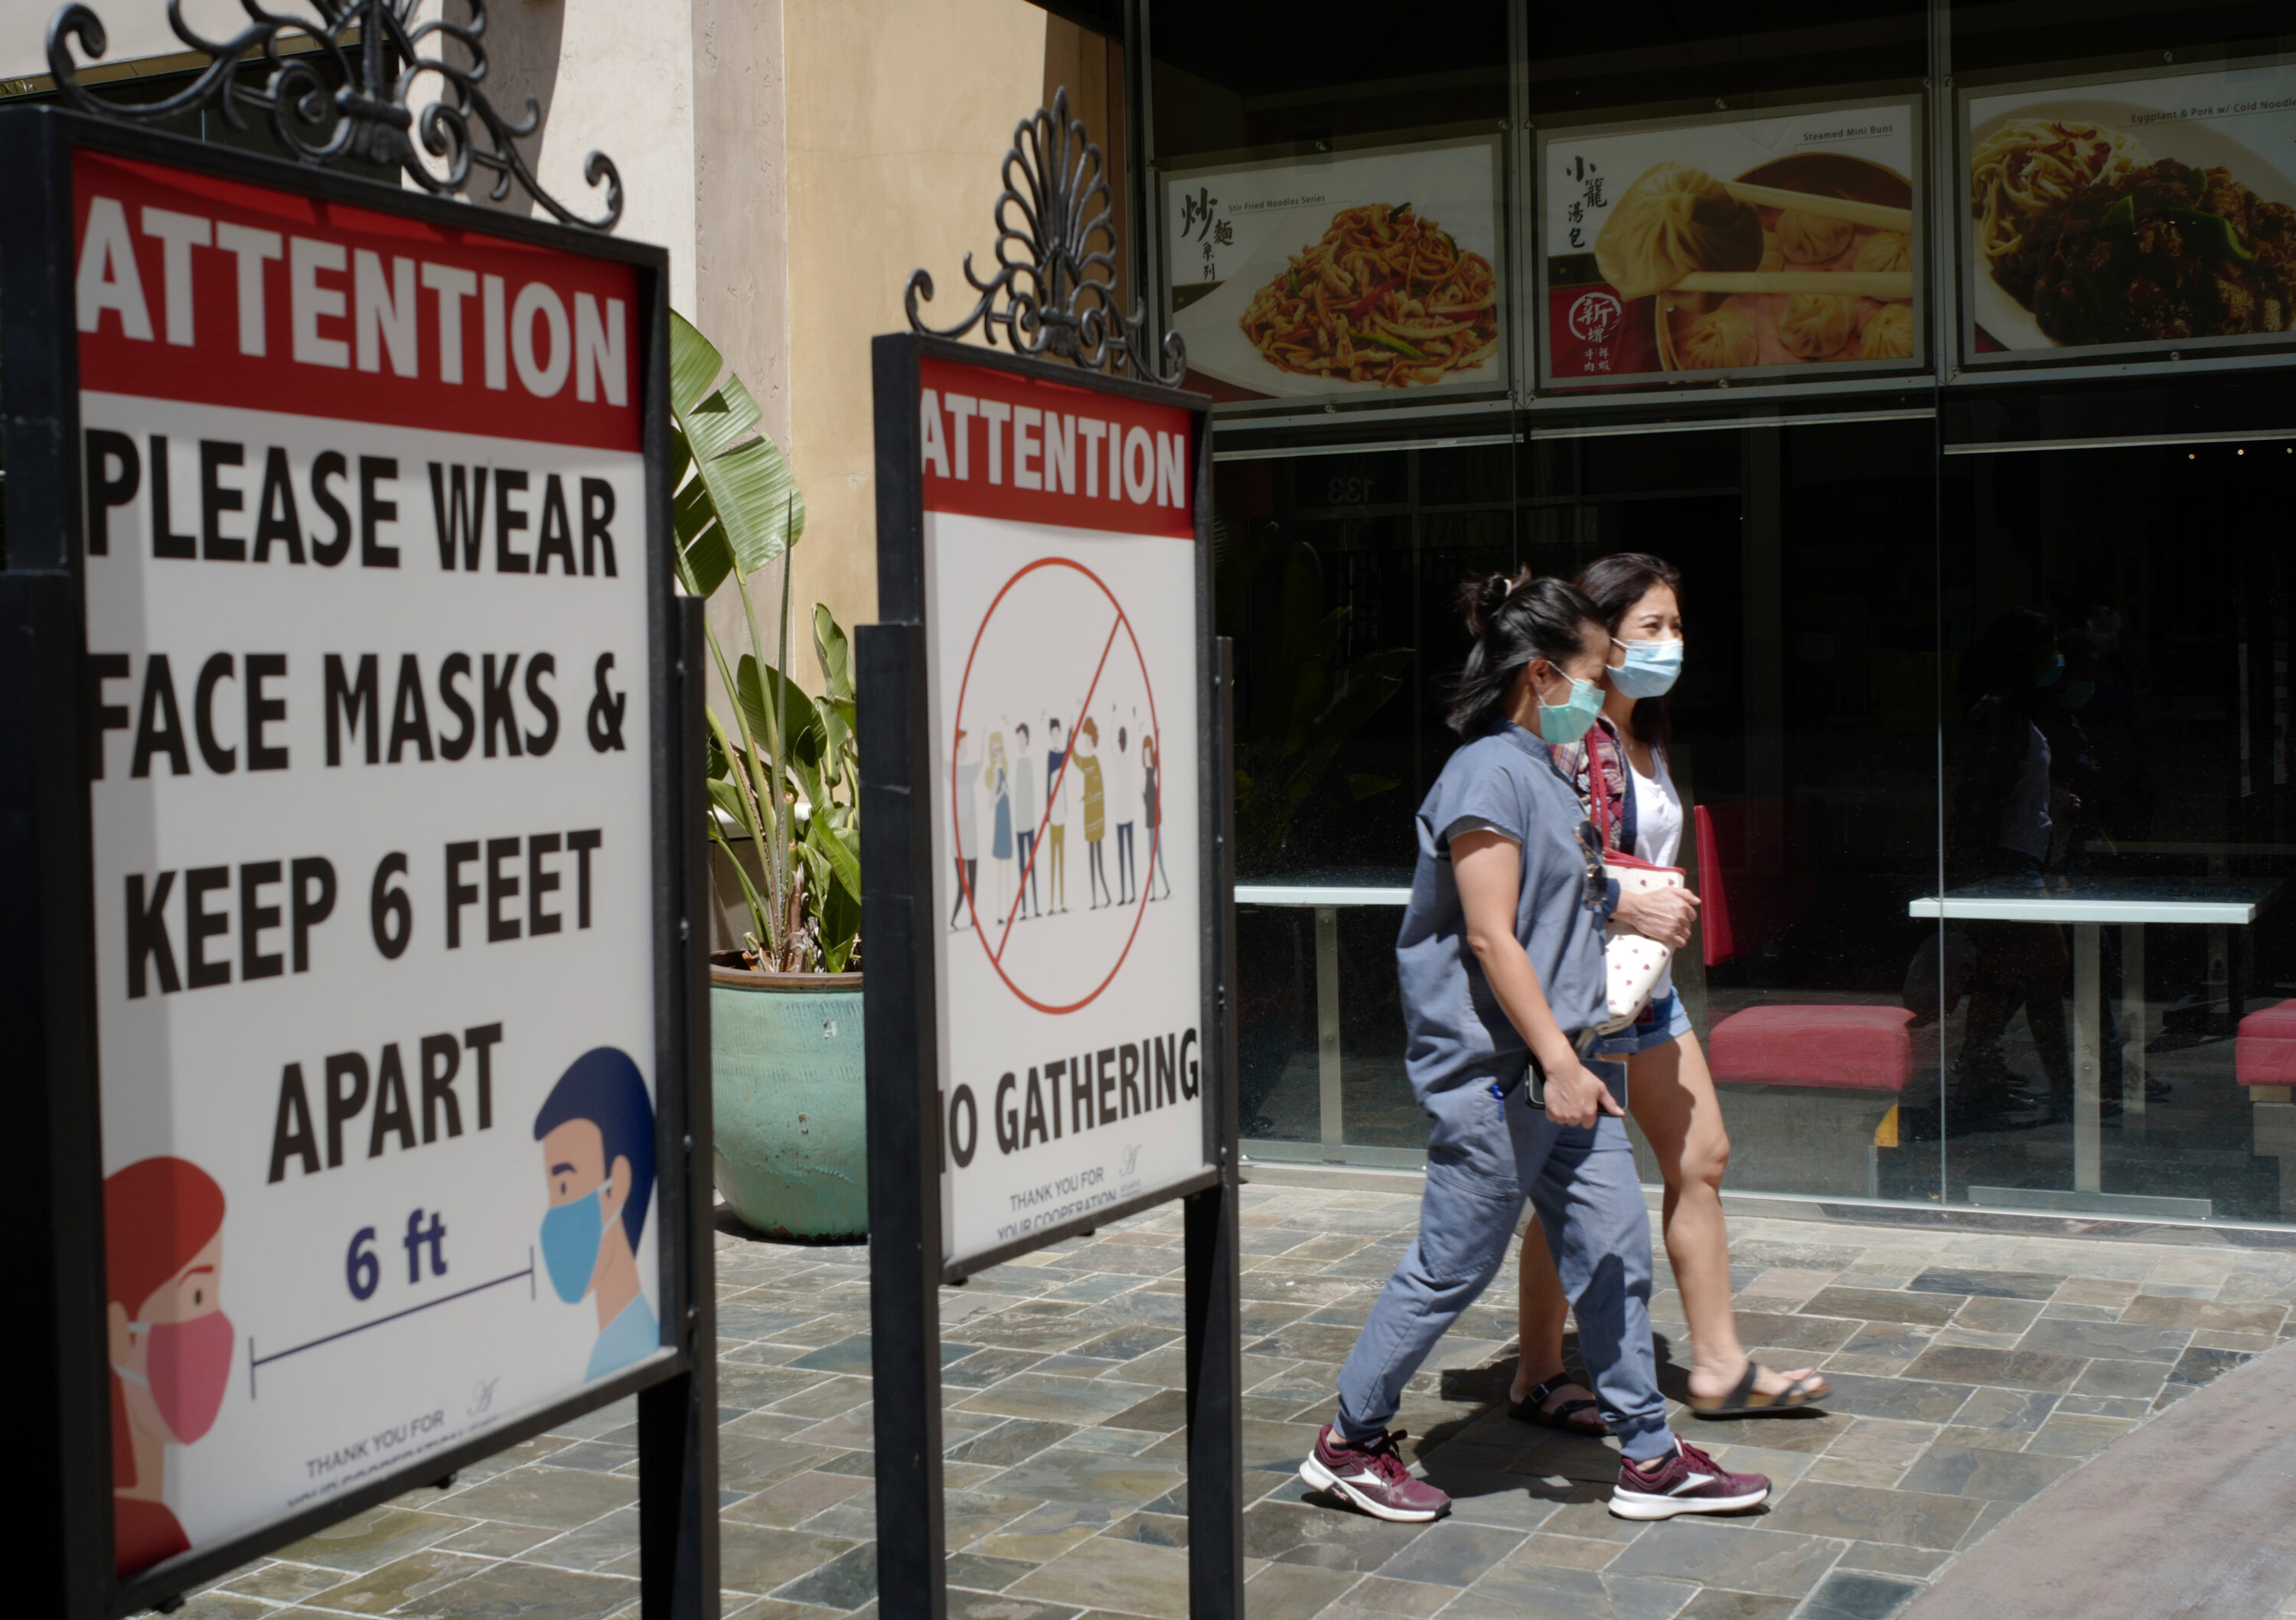 Los Angeles County to reinstate mask mandate amid rise in Covid-19 cases and hospitalizations